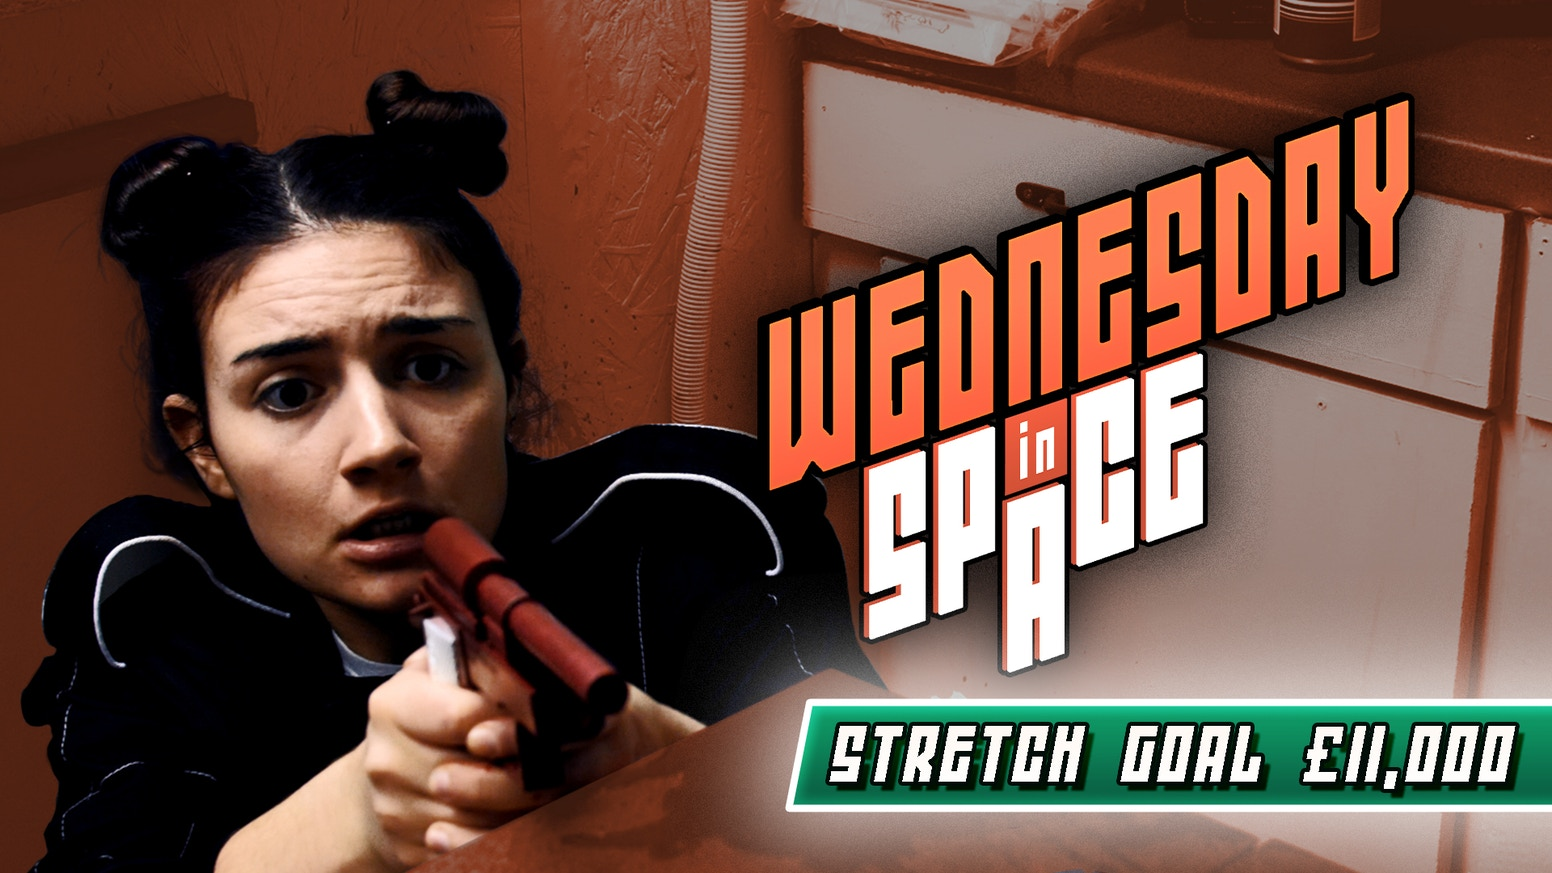 """Wednesday in Space"" is a whirlwind of comedy, violence and aggressive TV commercials, set in the galaxy's armpit."